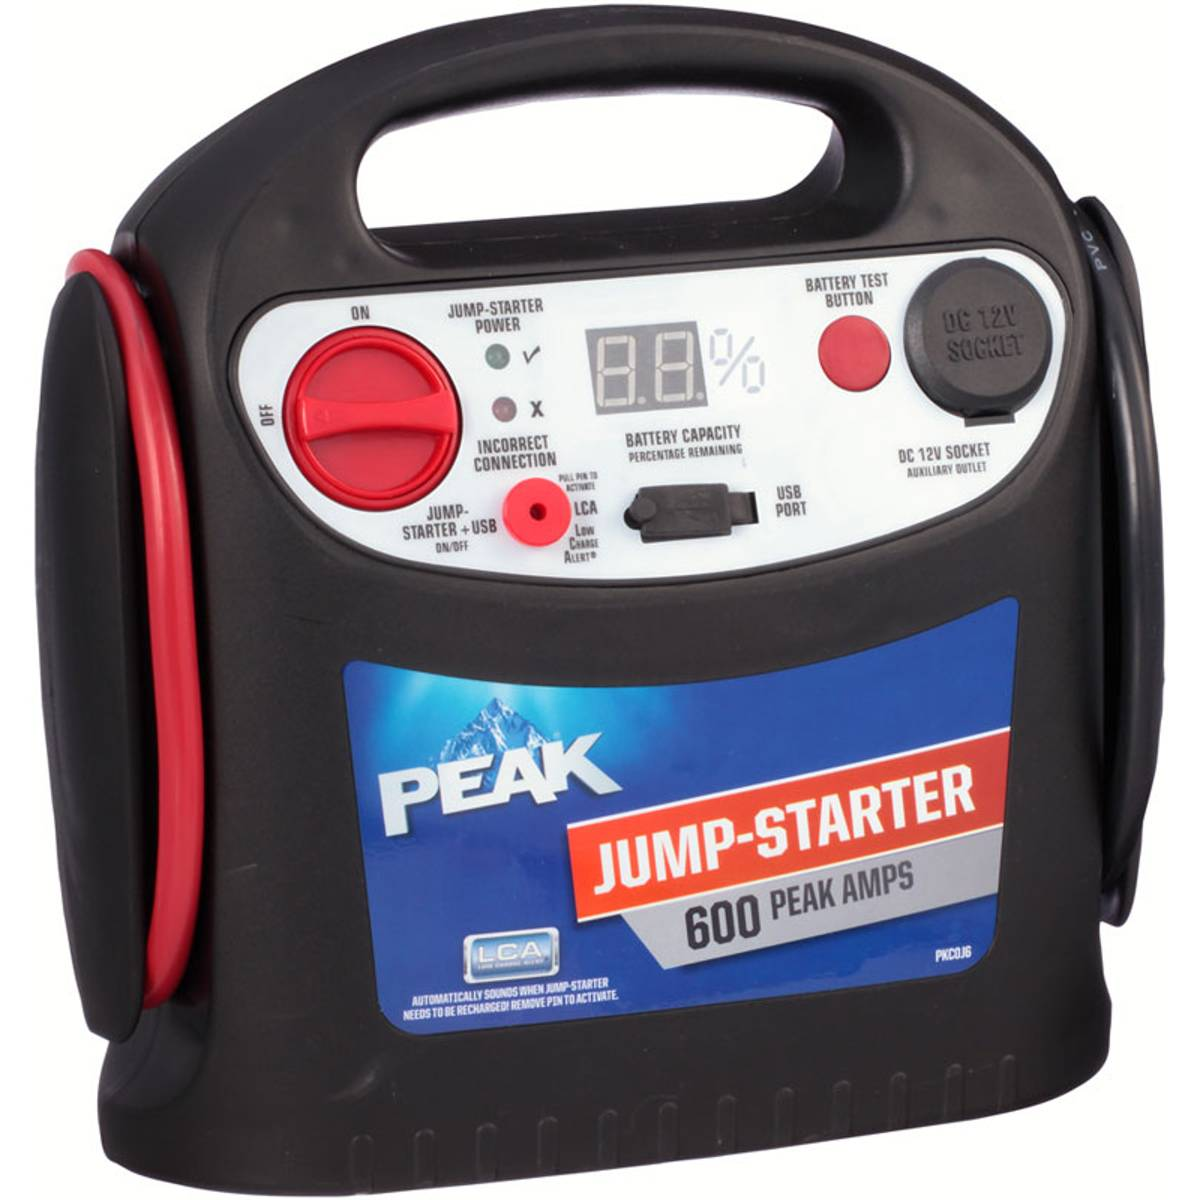 hight resolution of peak jump starter from blain s farm and fleet